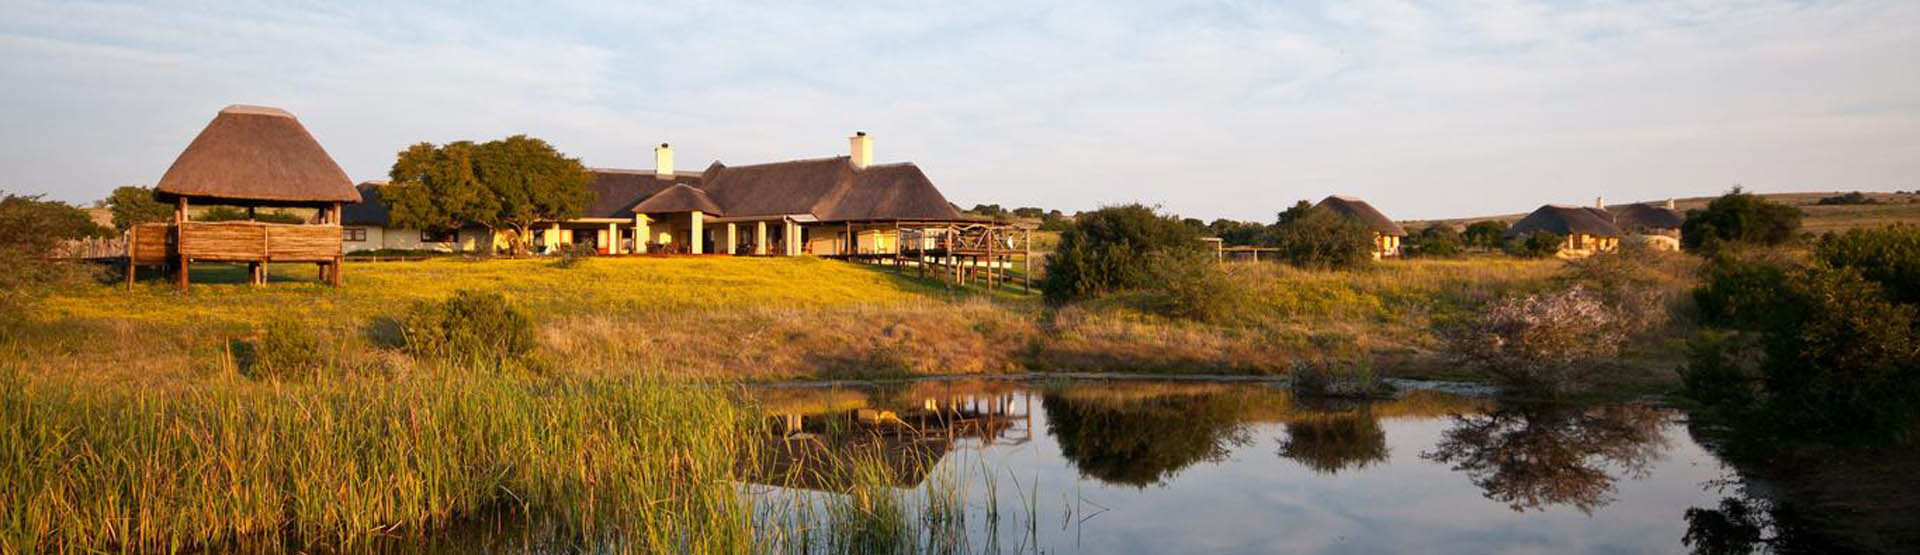 Hlosi Game Lodge Eastern Cape Main Lodge Exterior Watering Hole